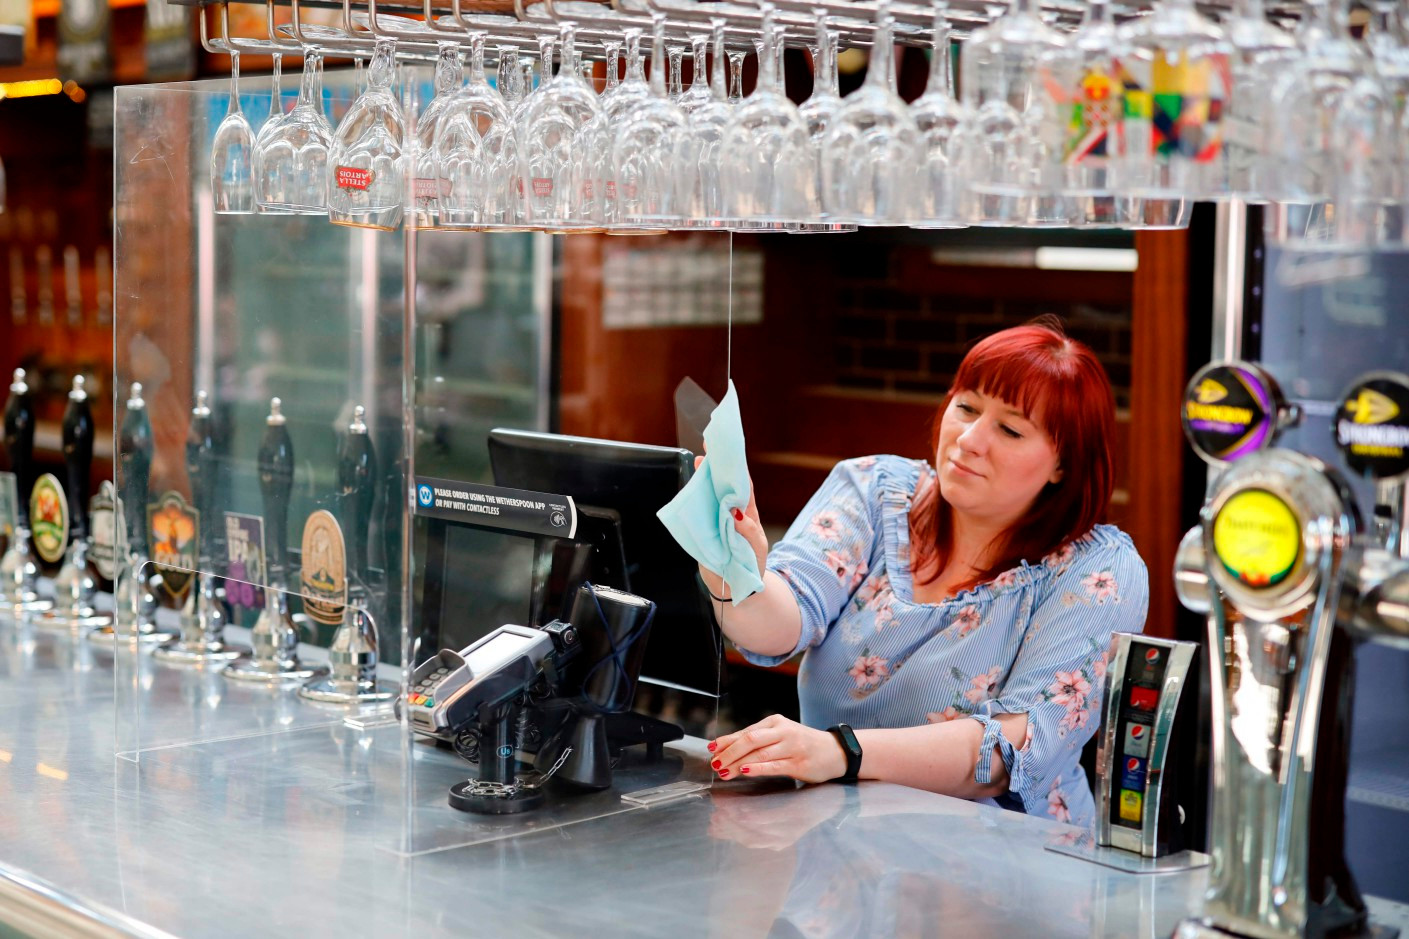 A member of staff at a Wetherspoons pub in north London cleans a perspex barrier put in place for pubs to reopen